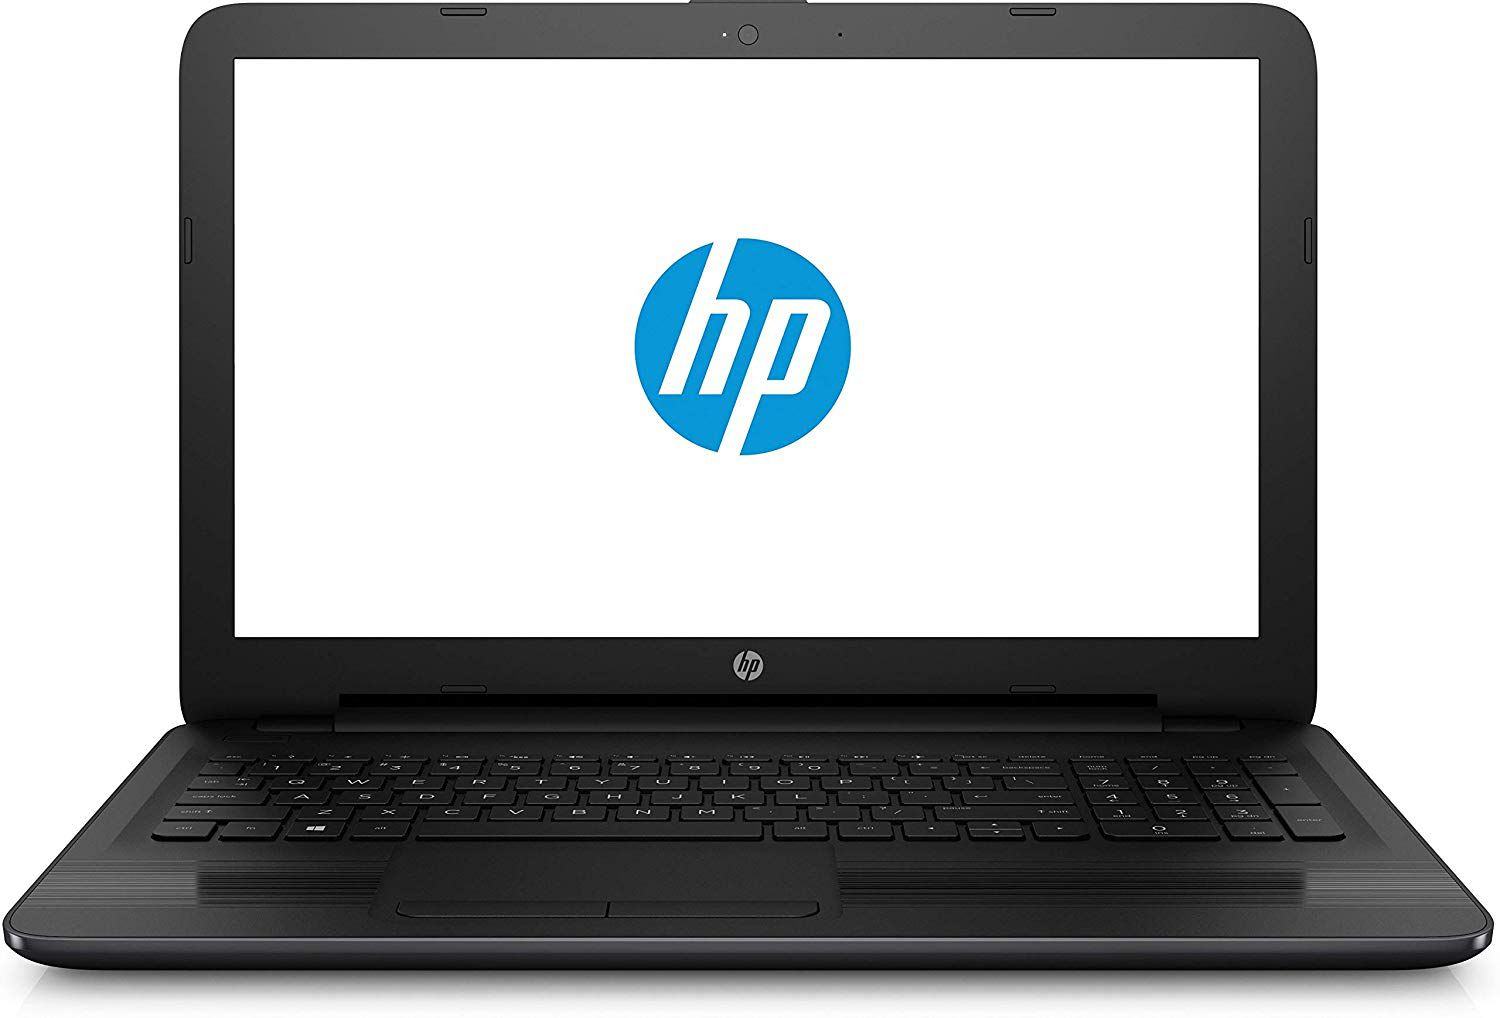 Notebook HP 250 G2 I3 2.4ghz 4GB 500GB tela 15.6